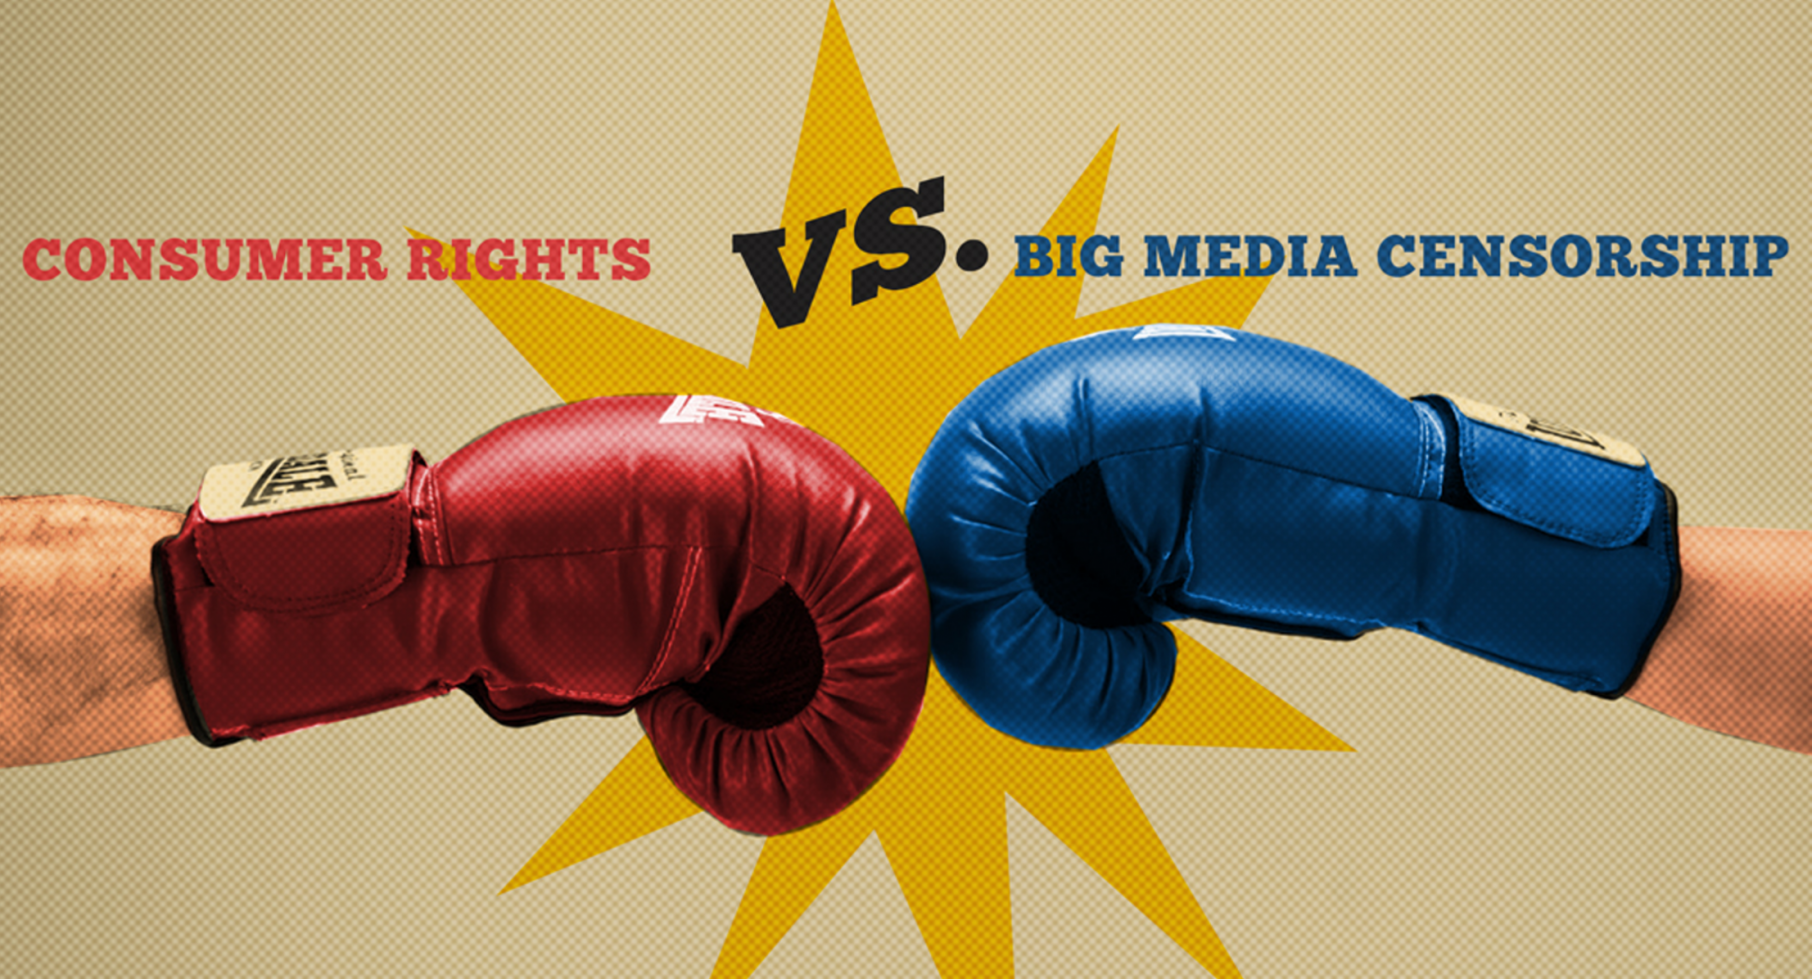 consumer rights vs big media censorship